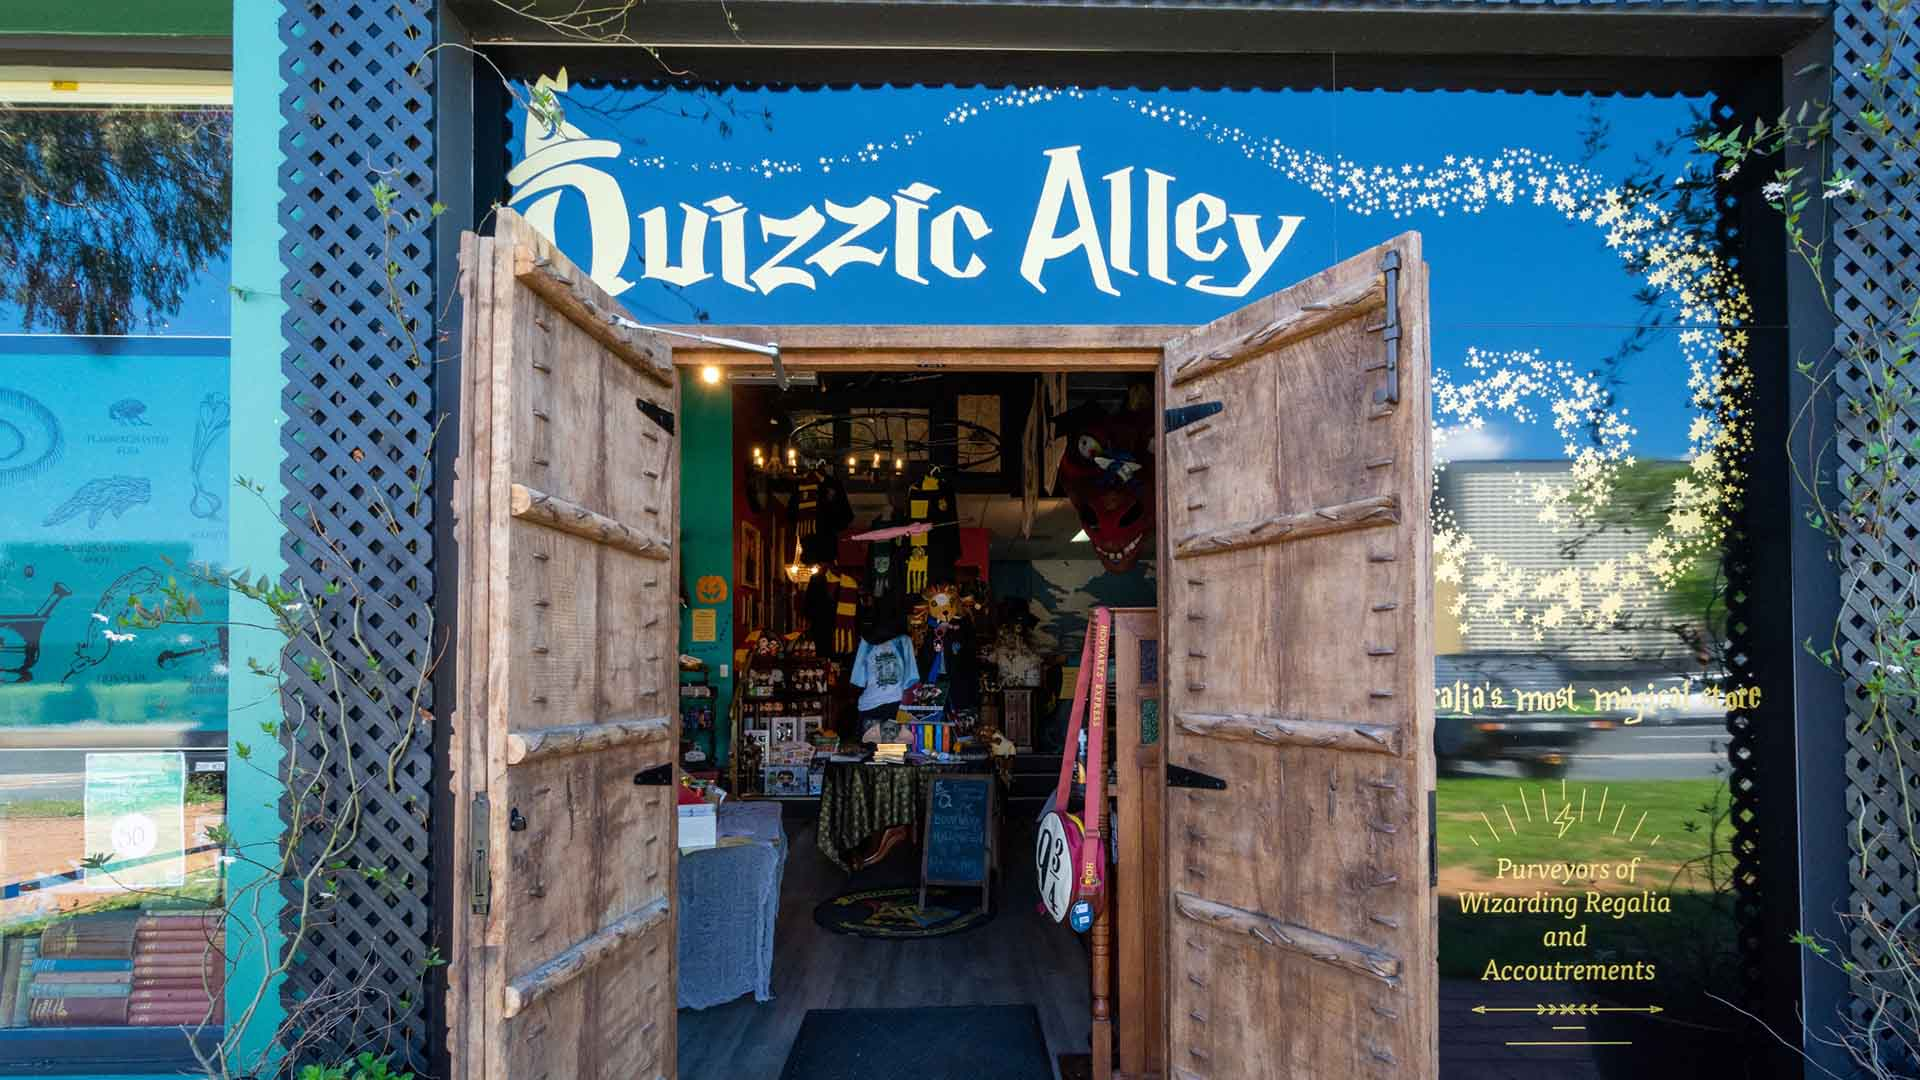 Canberra's Beloved 'Harry Potter' Store Quizzic Alley Is Bringing Its Magical Merchandise to Sydney